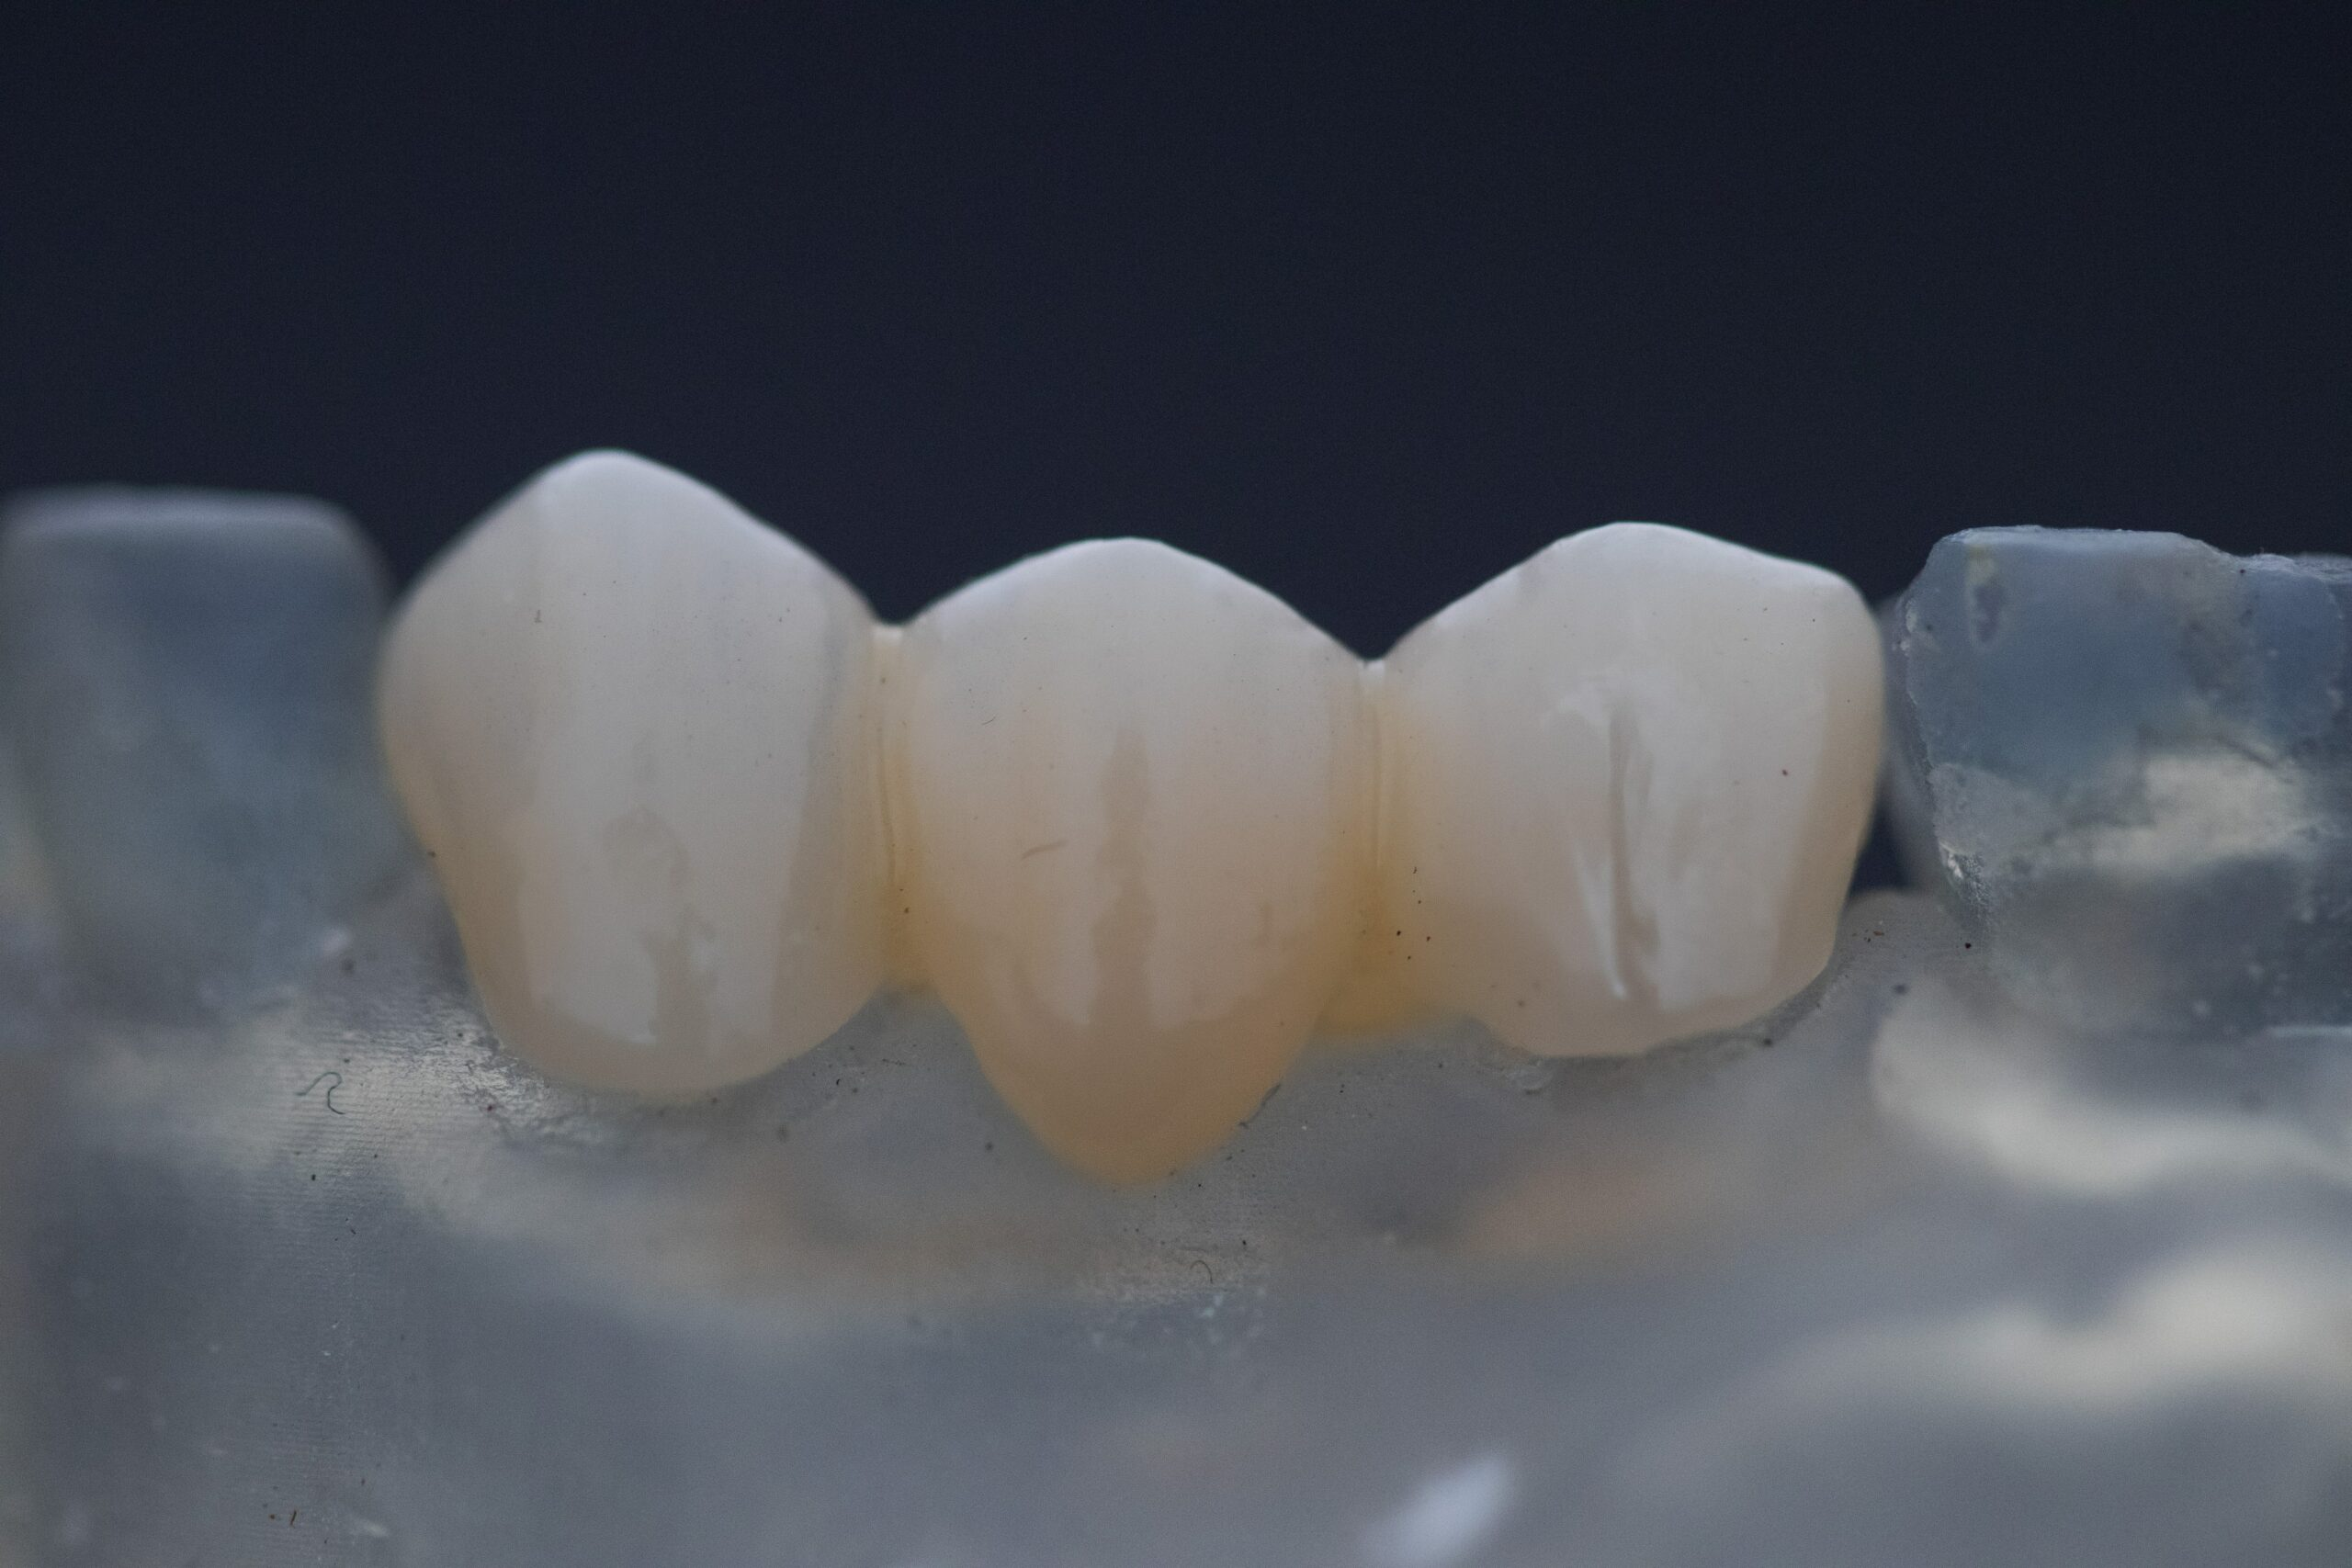 A bridge can replace a missing tooth